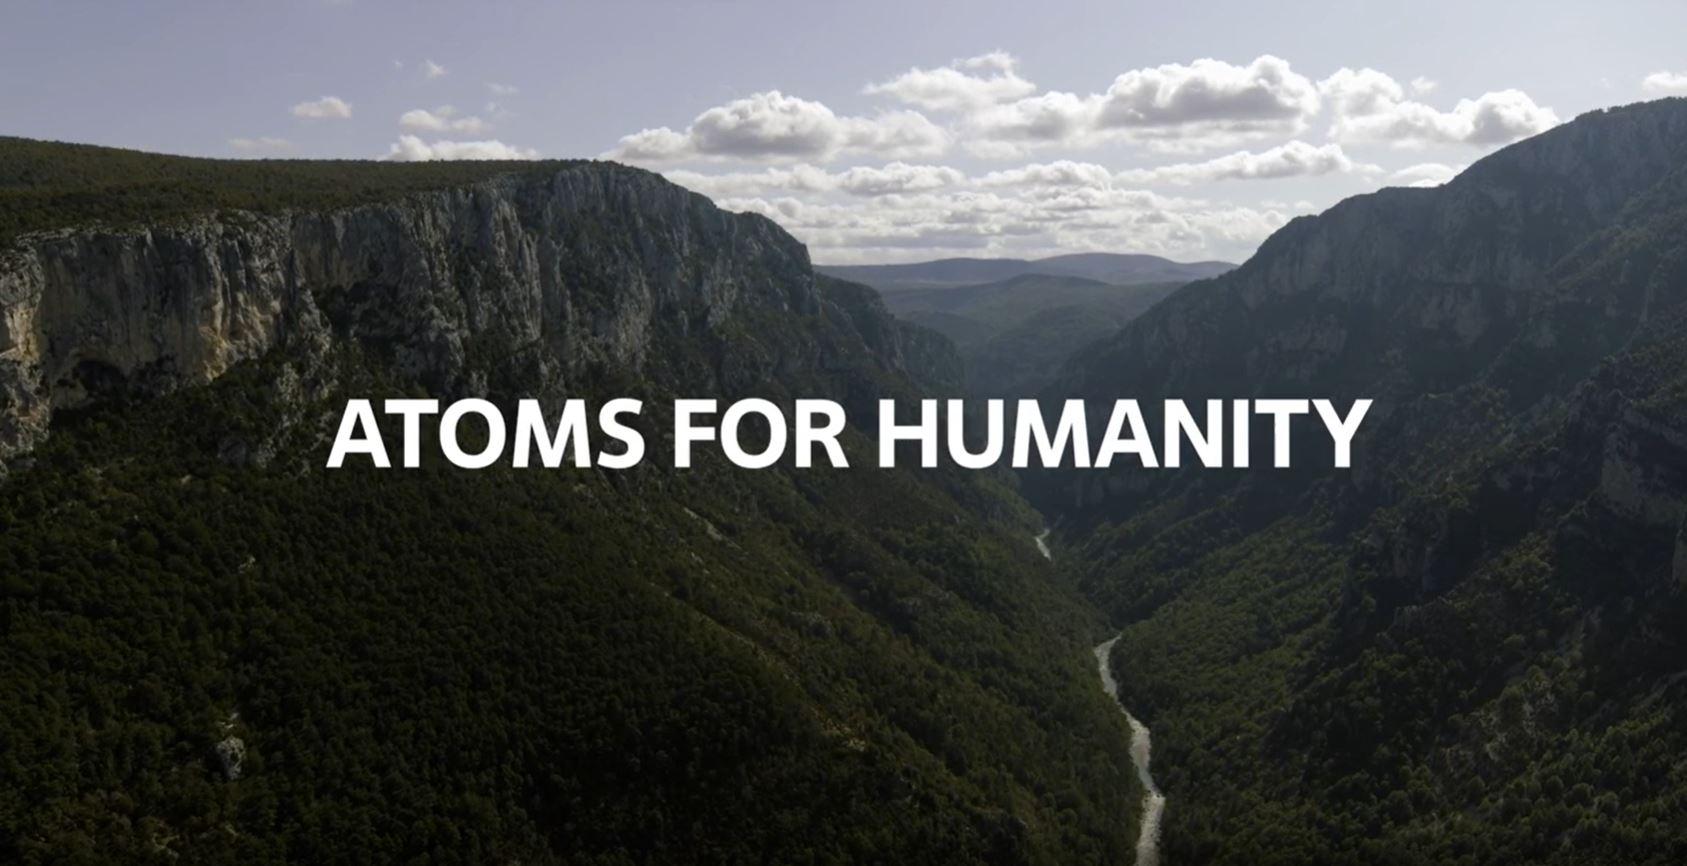 Thousands Join Launch of Rosatom's Atoms for Humanity Nuclear Awareness Campaign